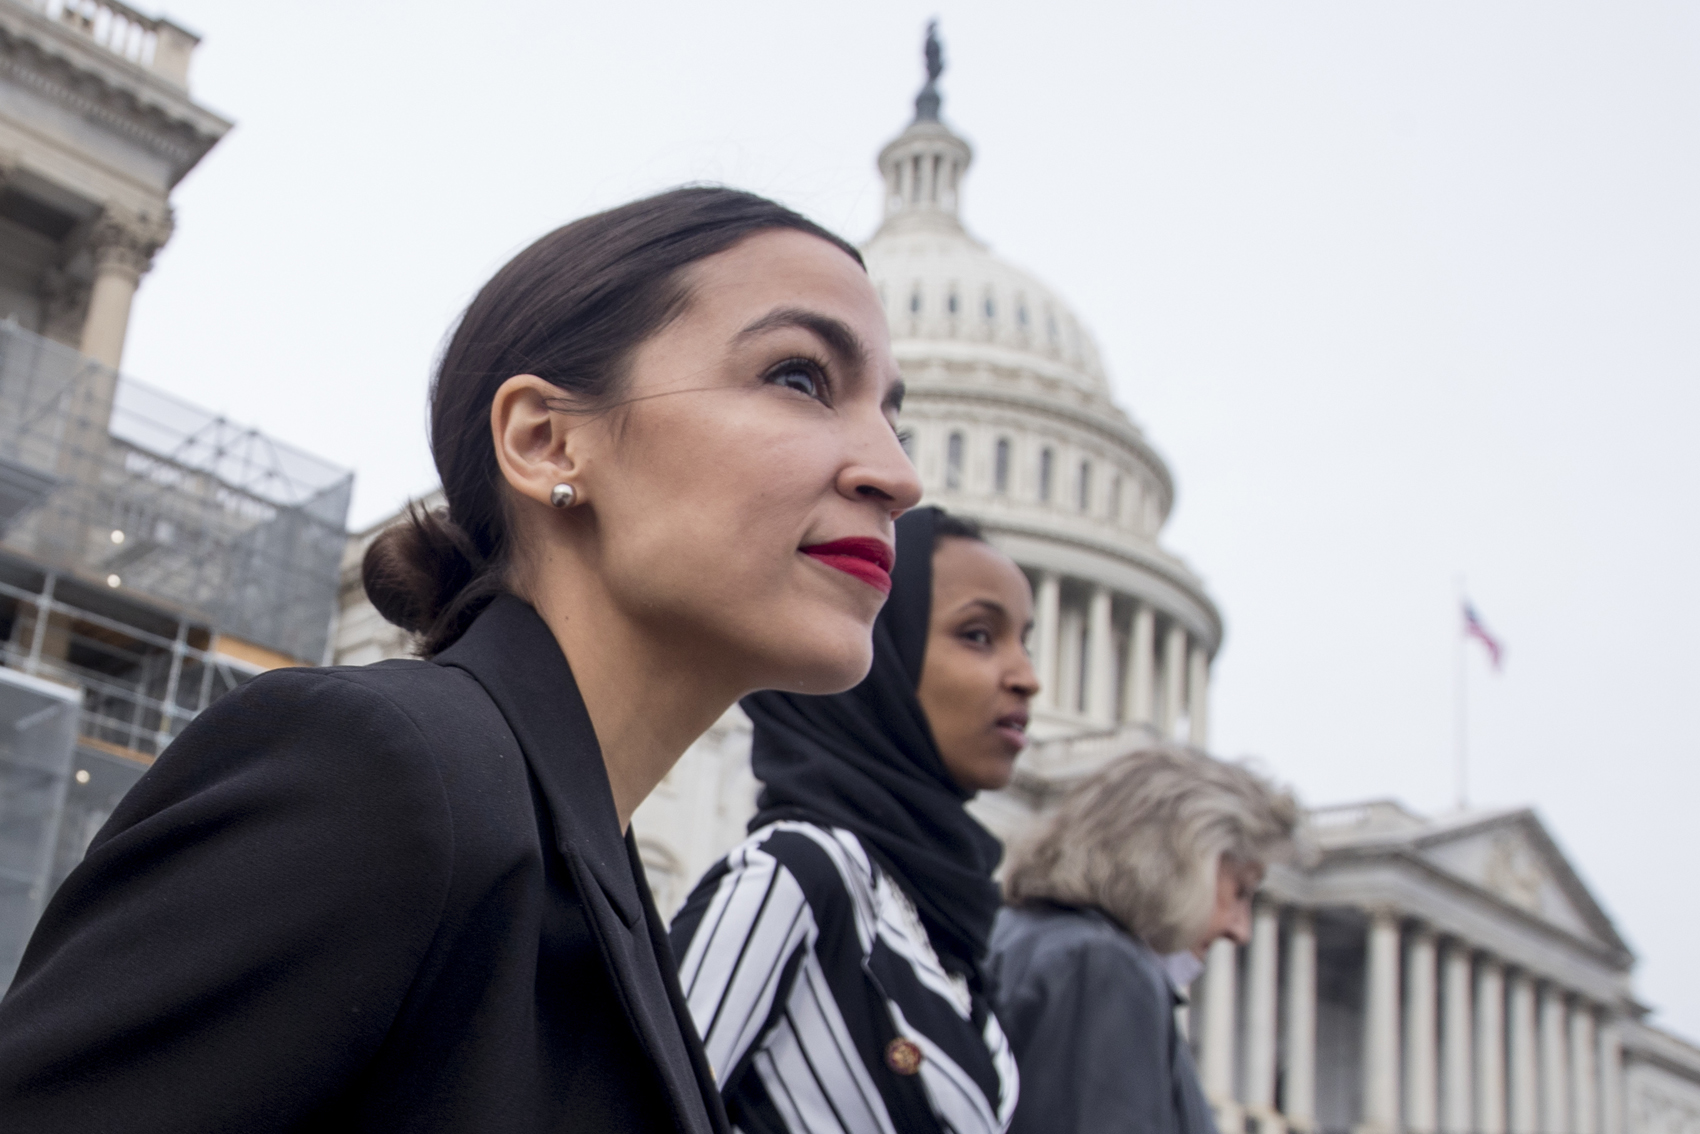 Rep. Alexandria Ocasio-Cortez, left, and D-N.Y., Rep. Ilhan Omar, D-Minn., center, walk down the House steps to take a group photograph of the House Democratic women members of the 116th Congress on the East Front Capitol Plaza on Capitol Hill in Washington, Friday, Jan. 4, 2019, as the 116th Congress begins. Also pictured is Rep. Dina Titus, D-Nev., right. (Andrew Harnik/AP)